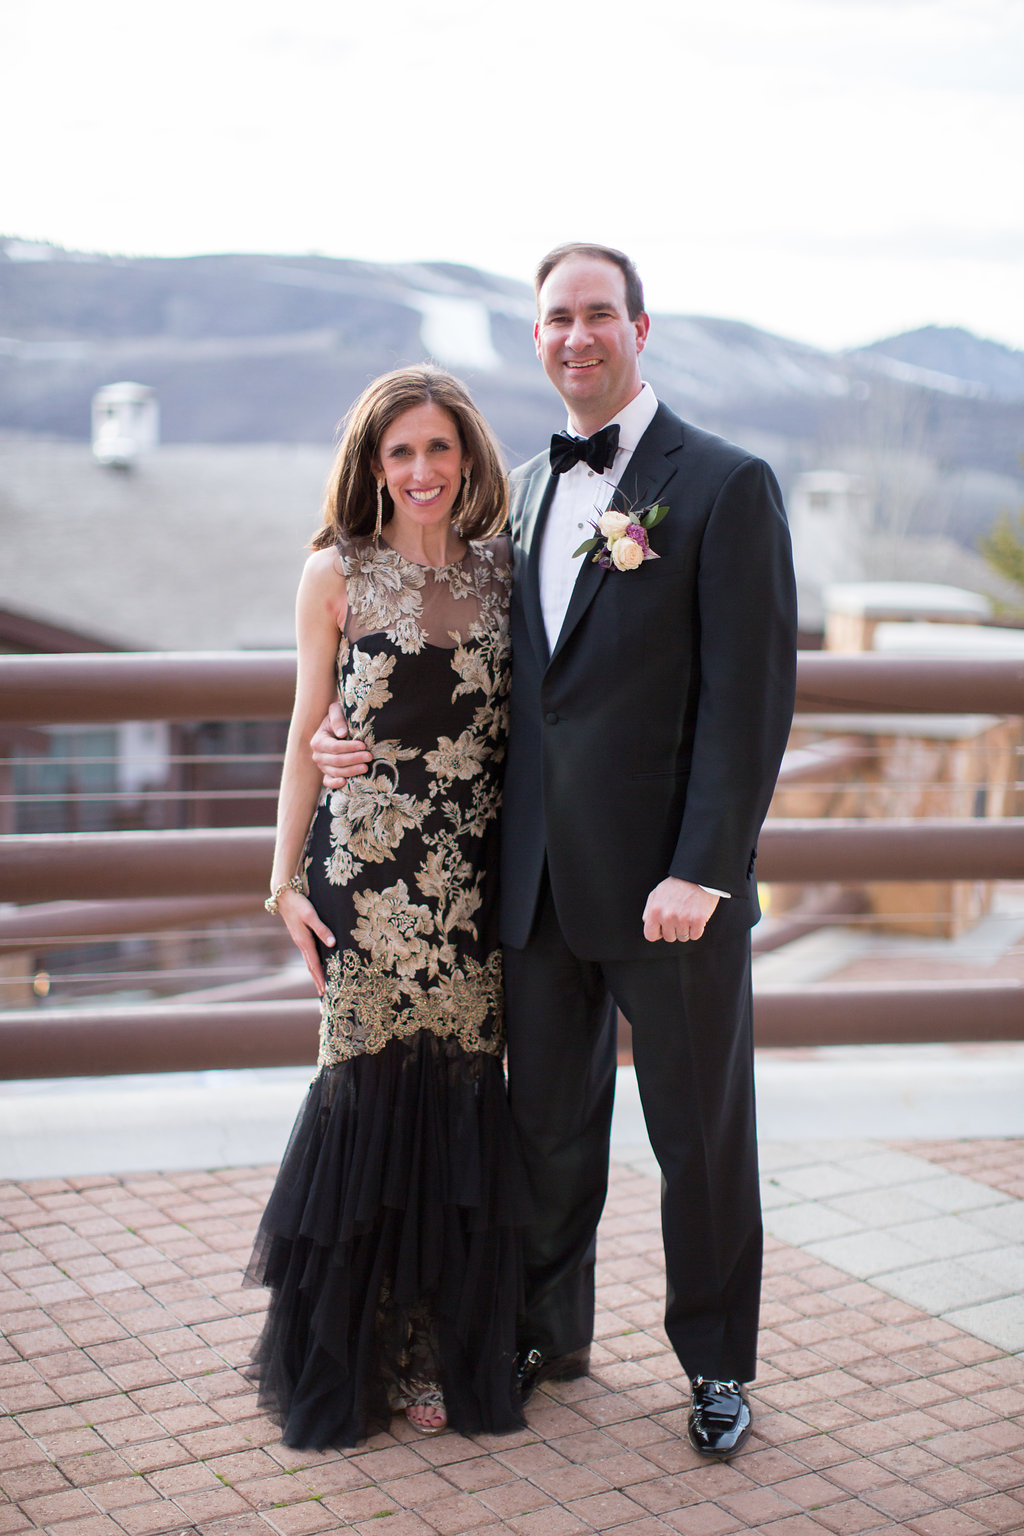 Understanding the Wedding Dress Code | What to Wear to a Wedding | Michelle Leo Events | Utah Event Planner and Designer